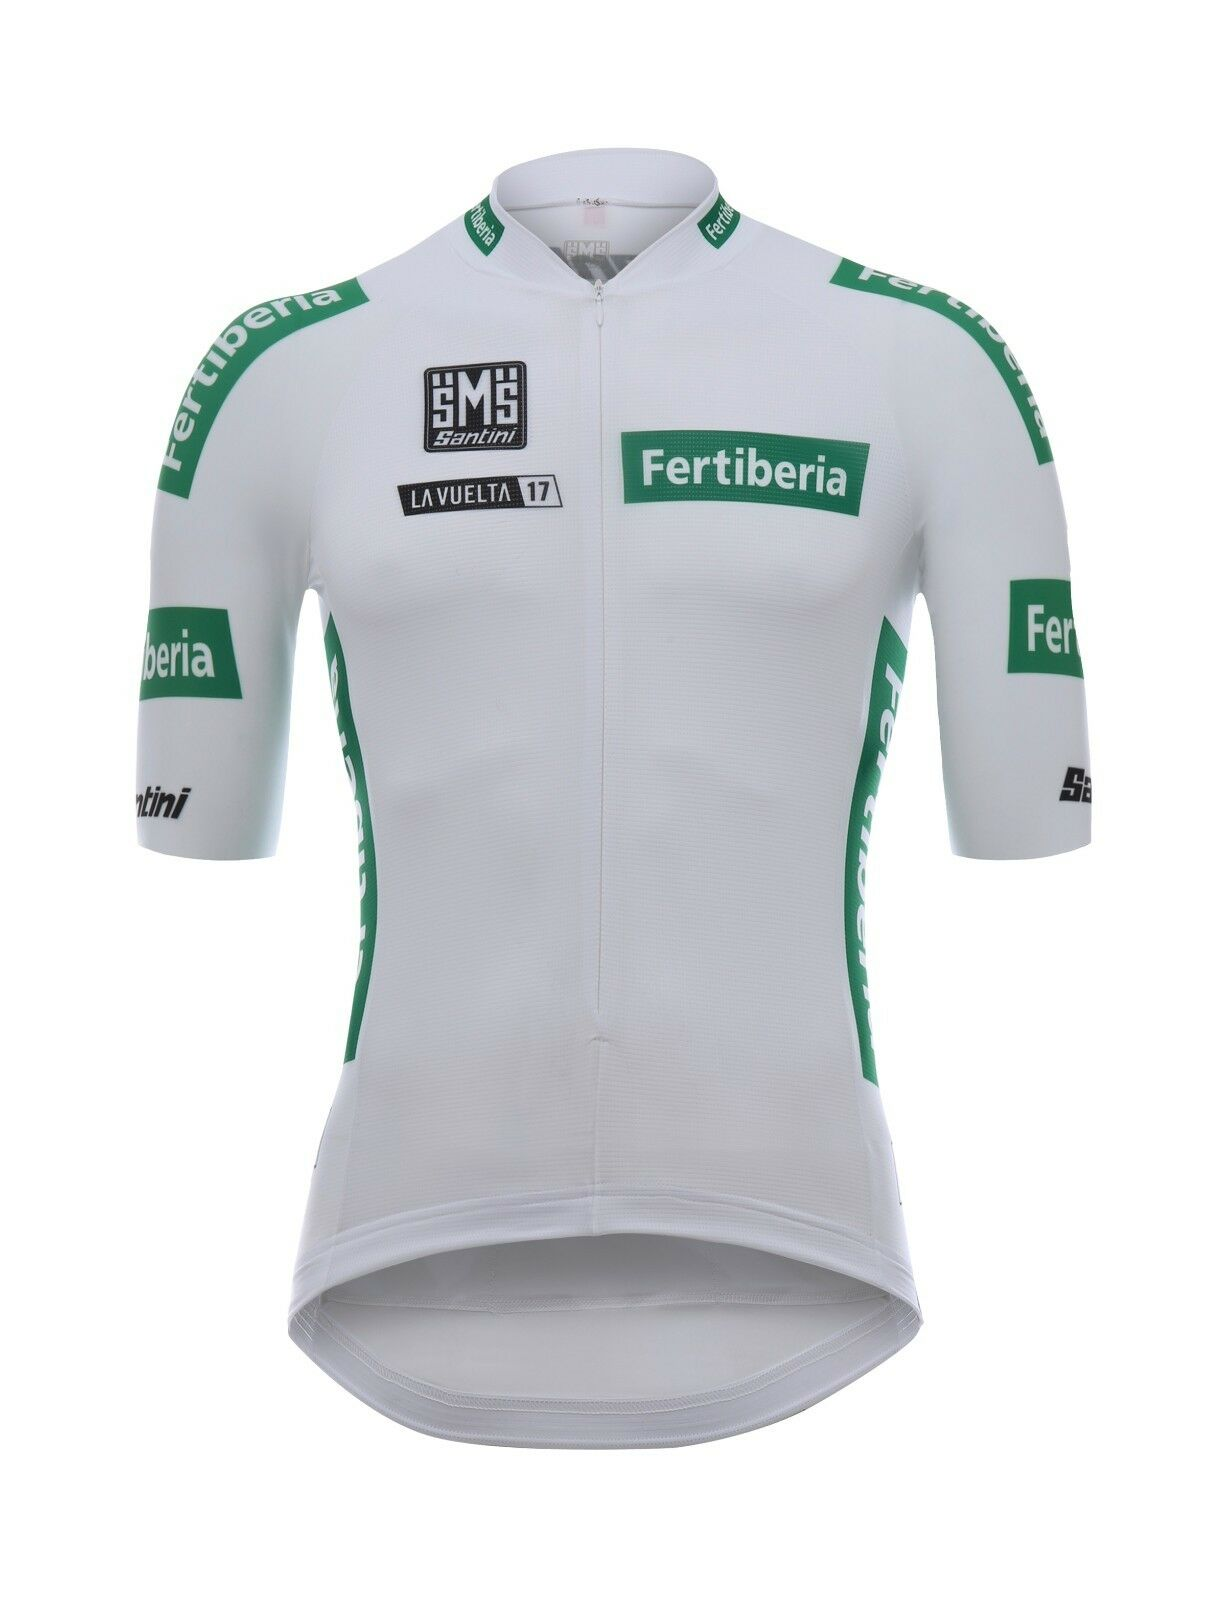 2017 La Vuelta Weiß Leaders Radfahren Jersey  Made in  by Santini